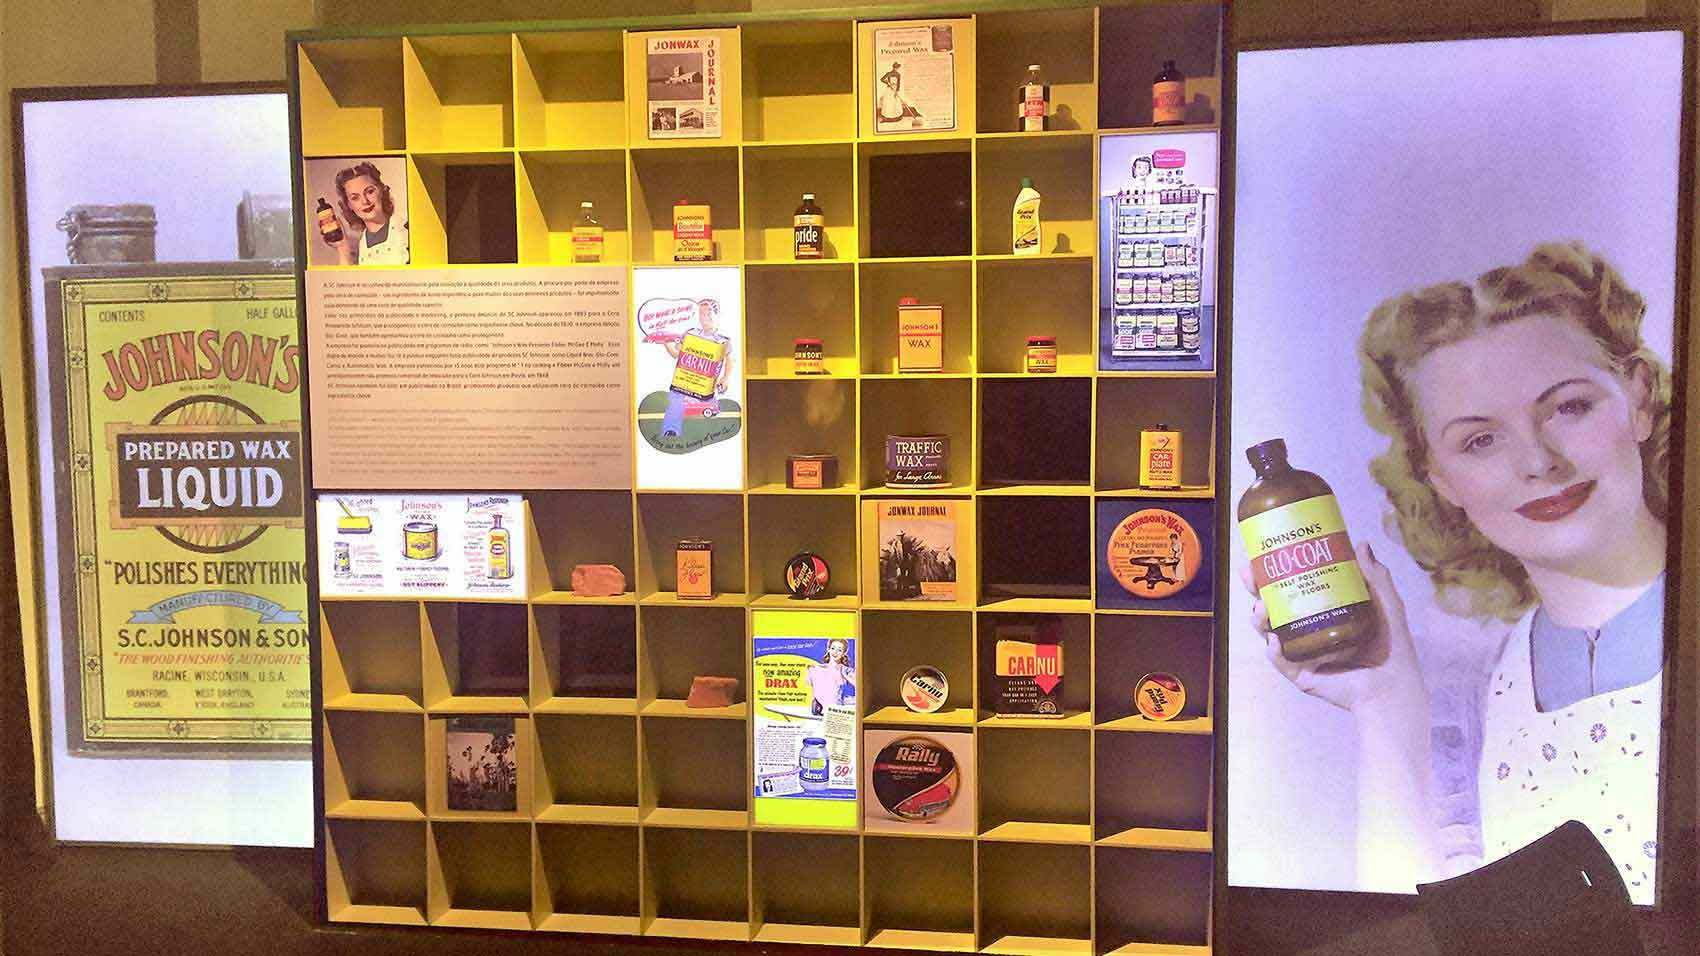 Exhibit showing Johnson Wax products containing carnaúba wax.